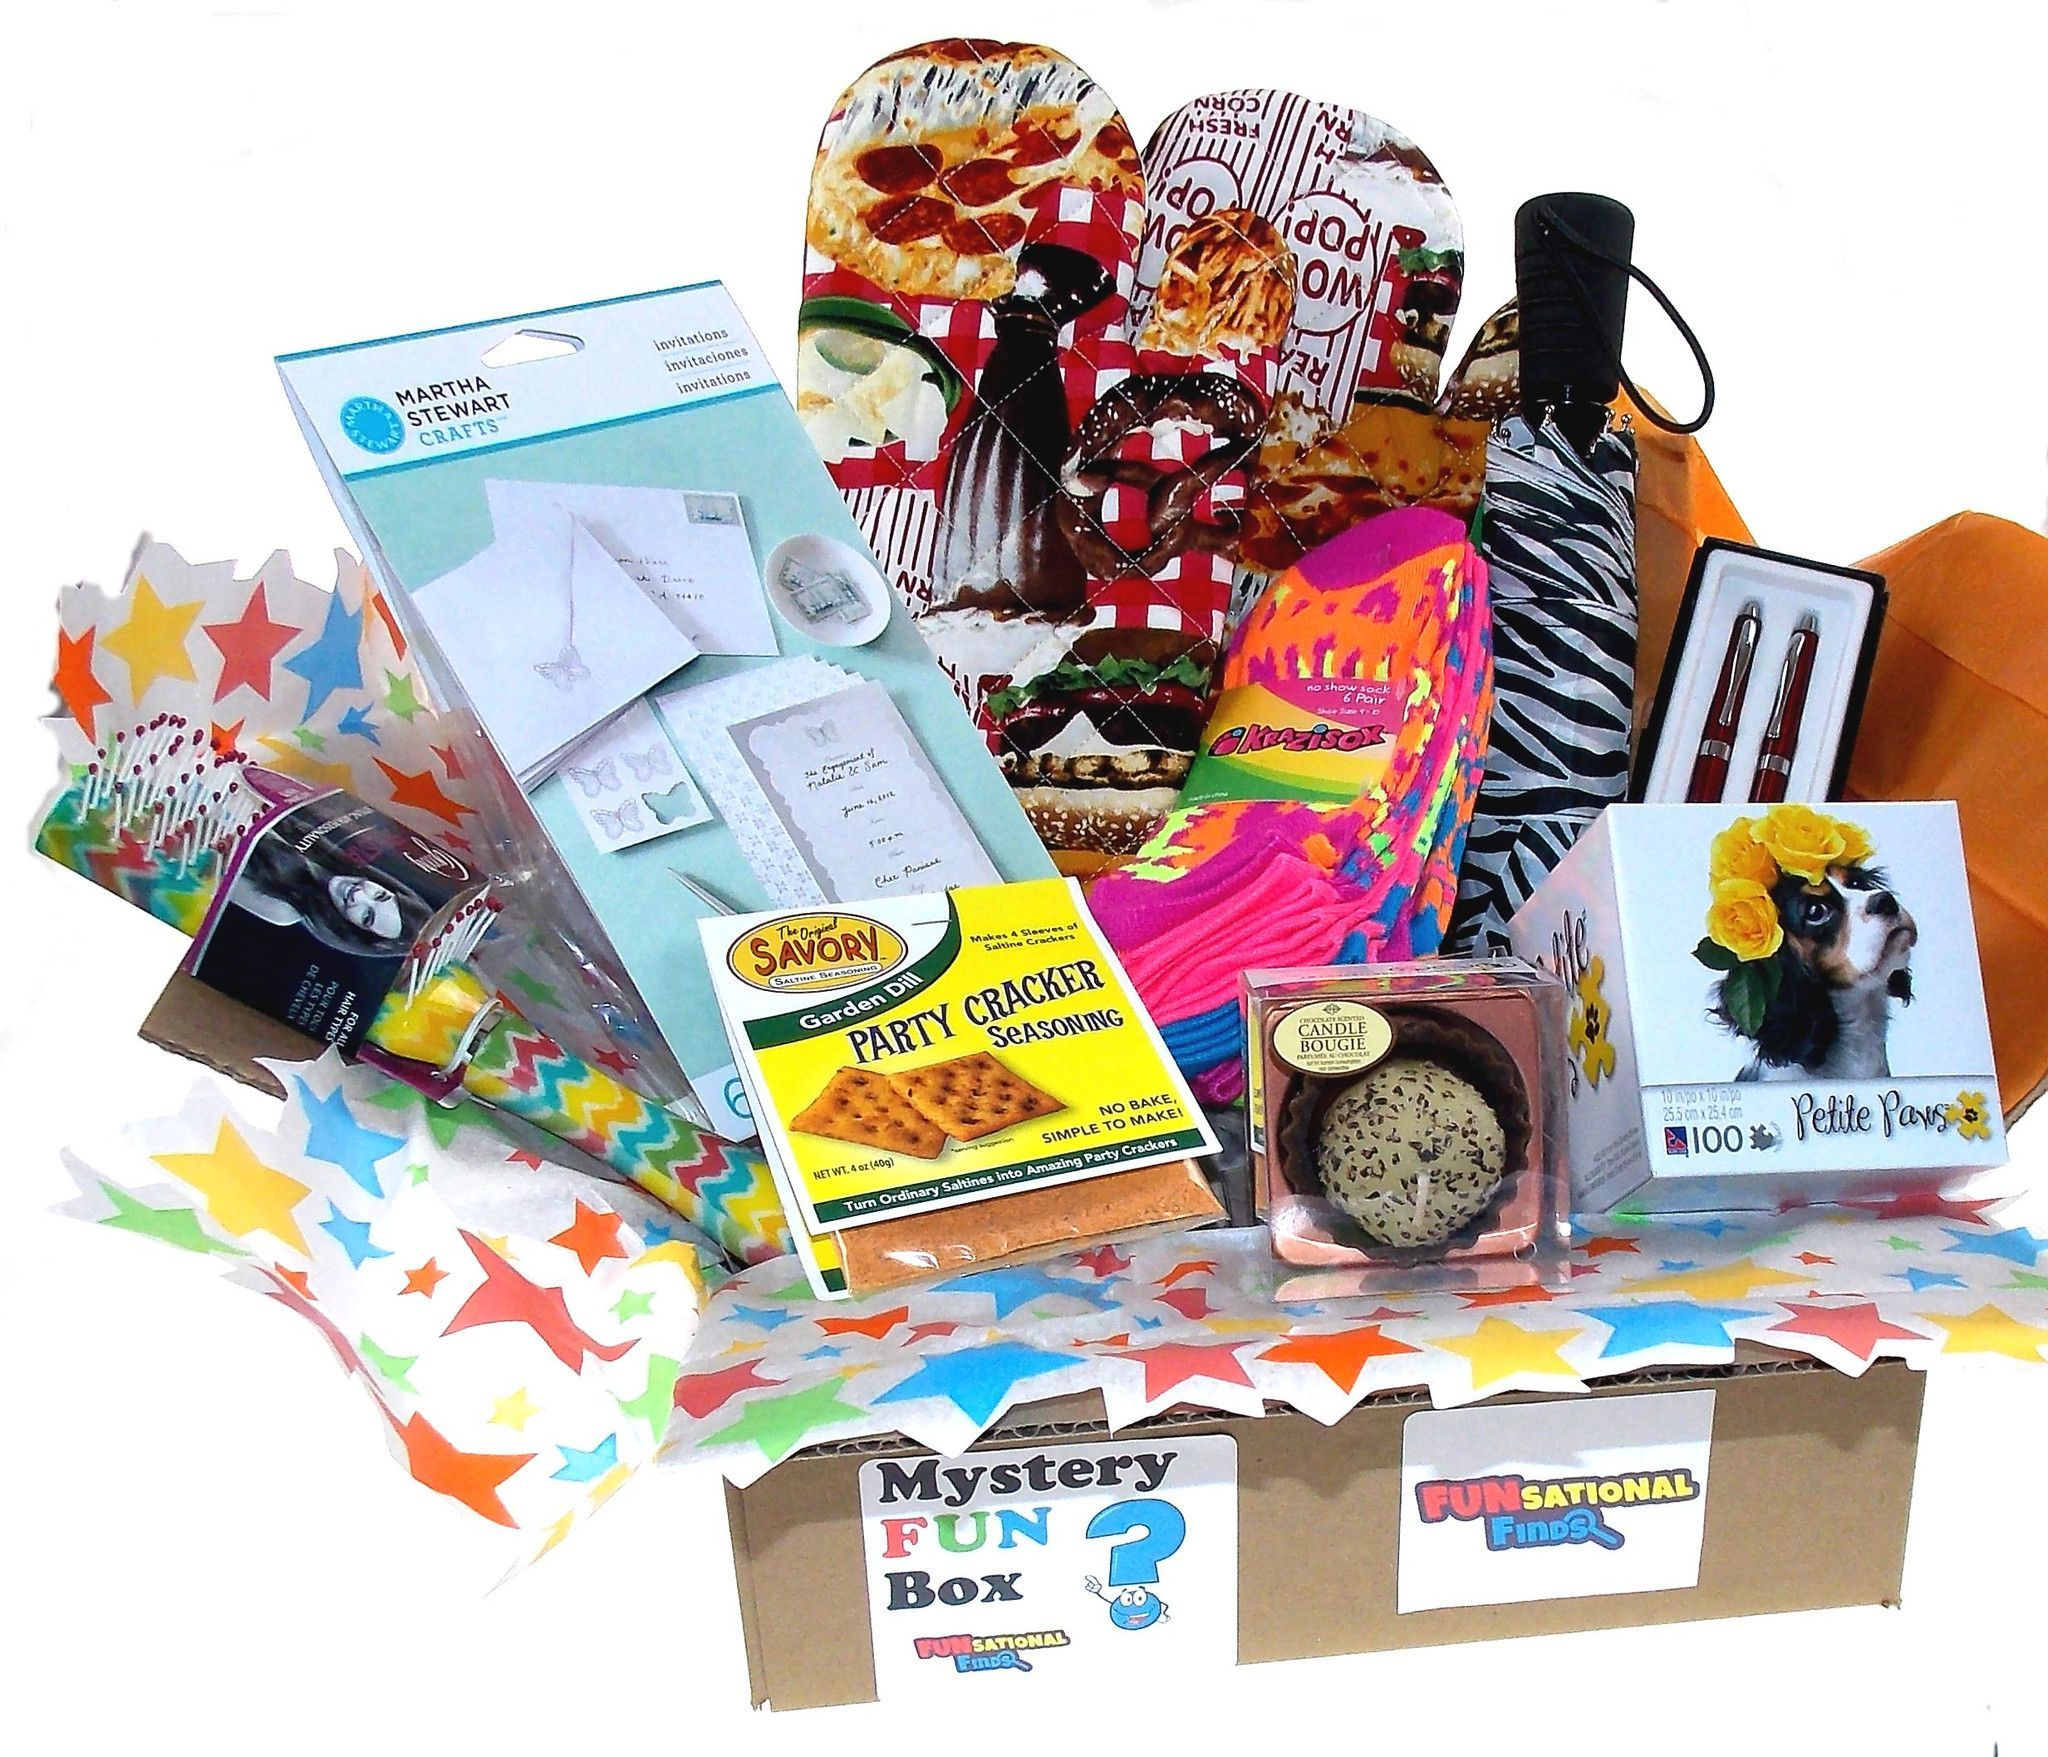 Women's Mystery FUN Box Get 4 6 (or even more!) items in